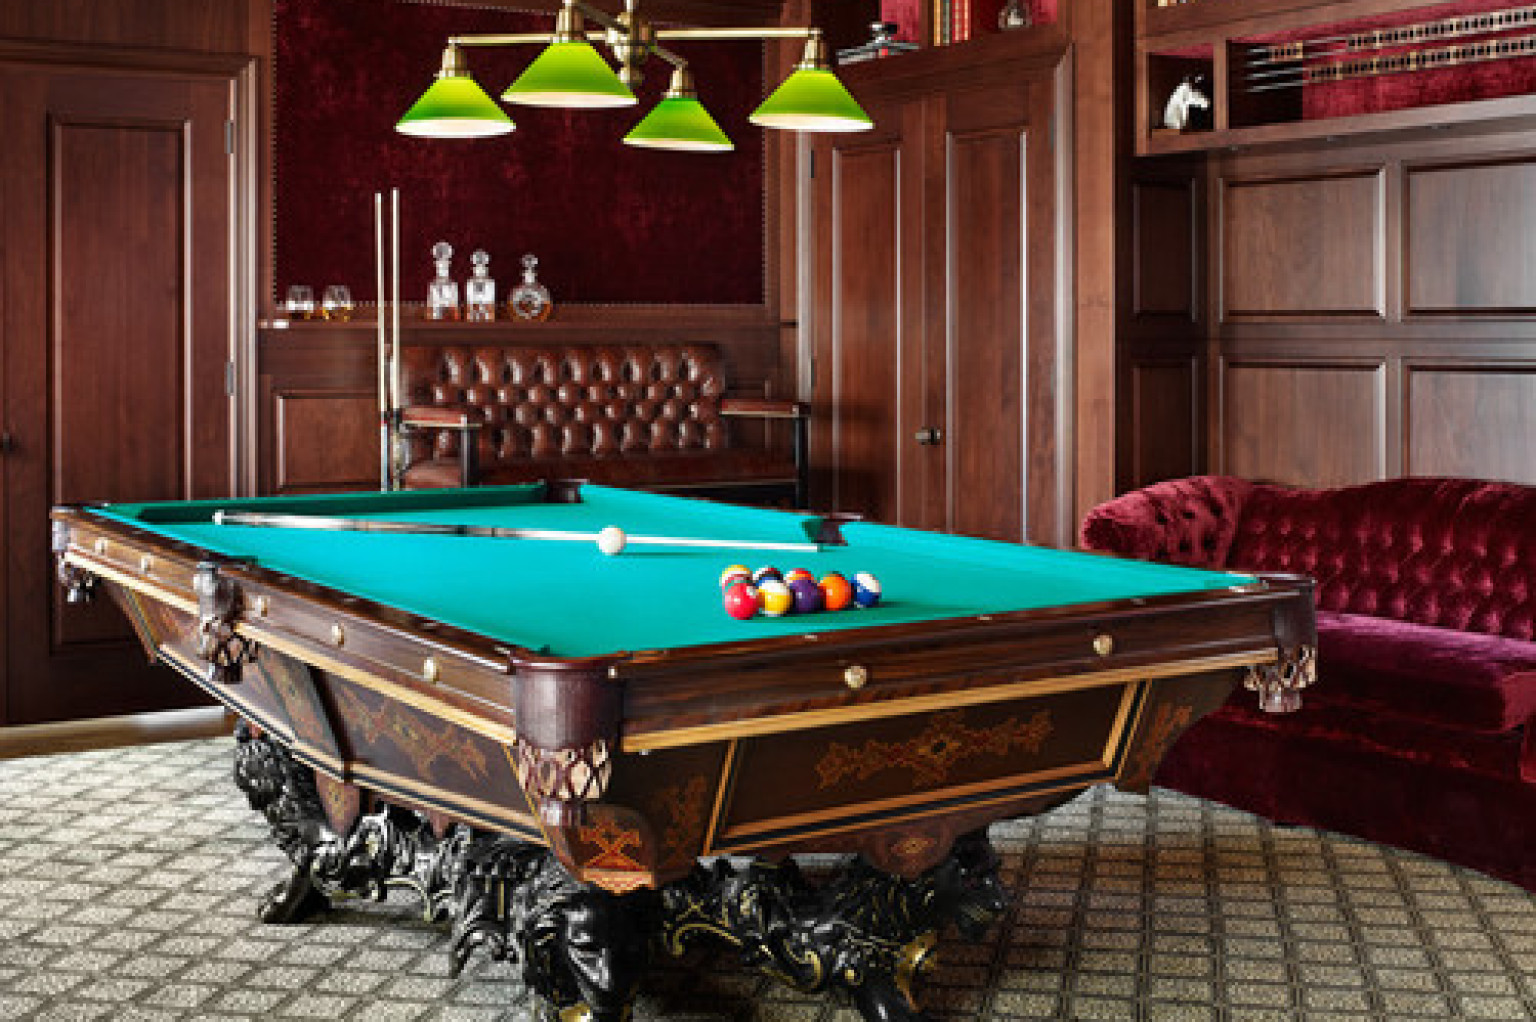 Pool Room Furniture Ideas rec room design ideas for some fancy time at home 15 Homes With Amazing Pool Tables That Are Anything But An Eyesore Photos Huffpost